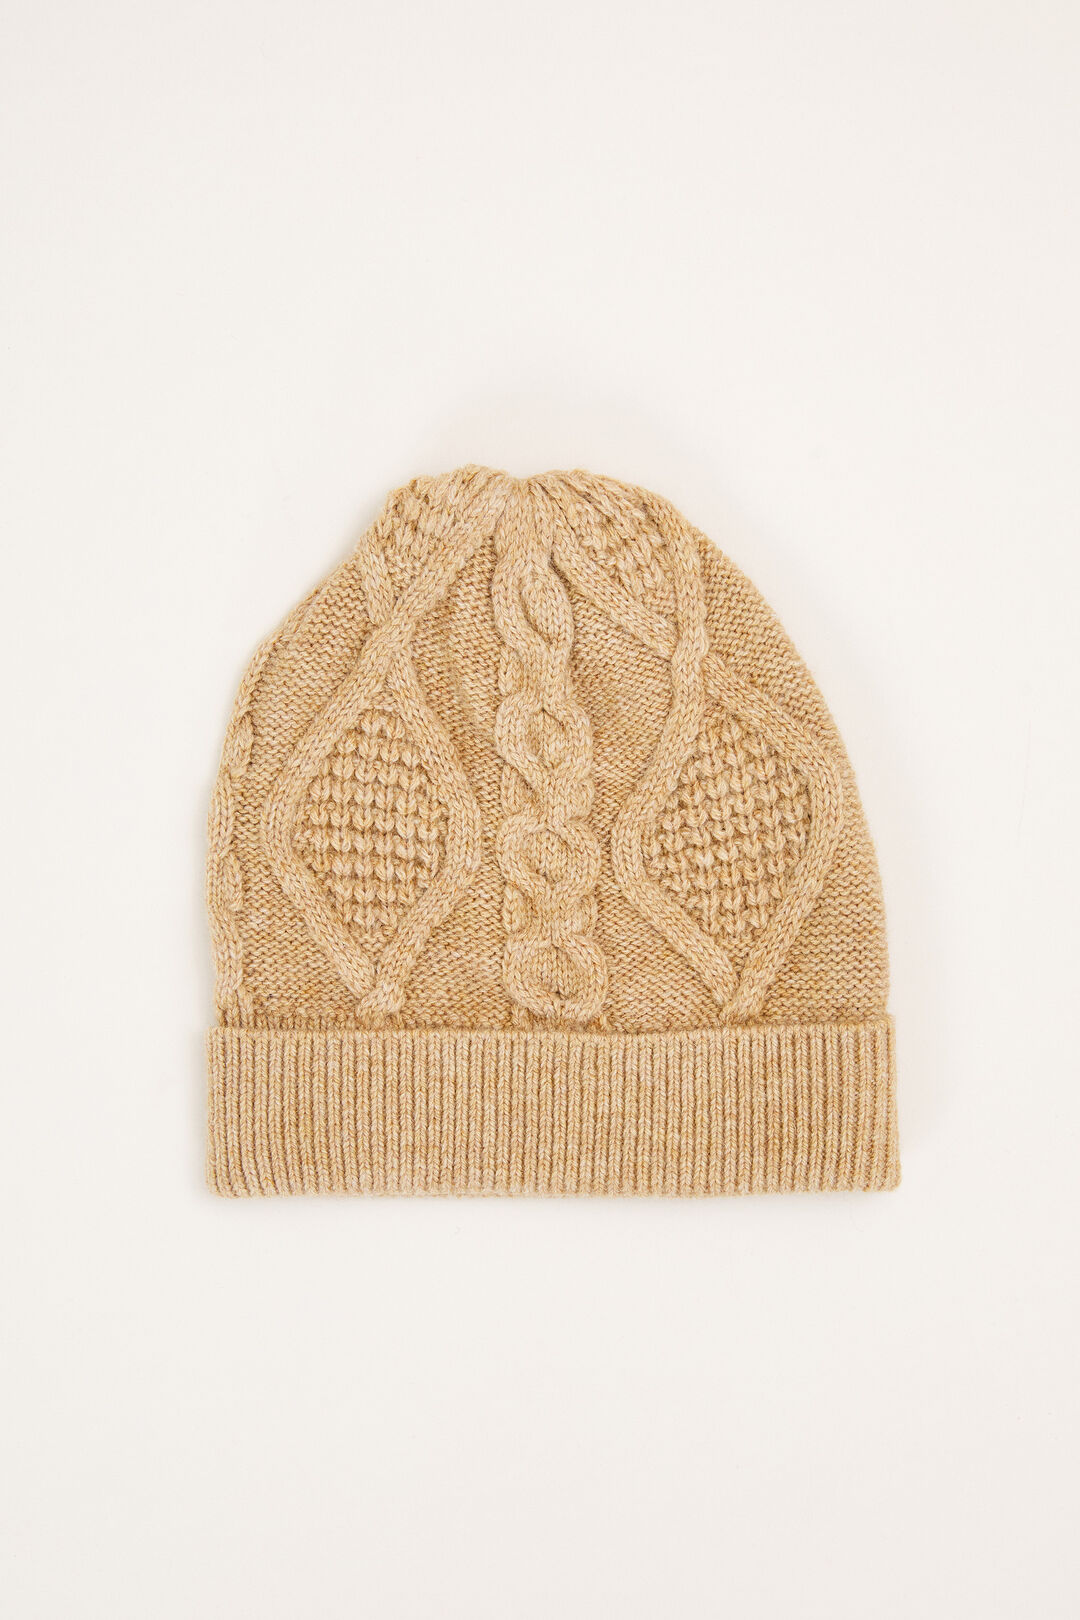 CABLE KNIT BEANIE  CAMEL  hi-res